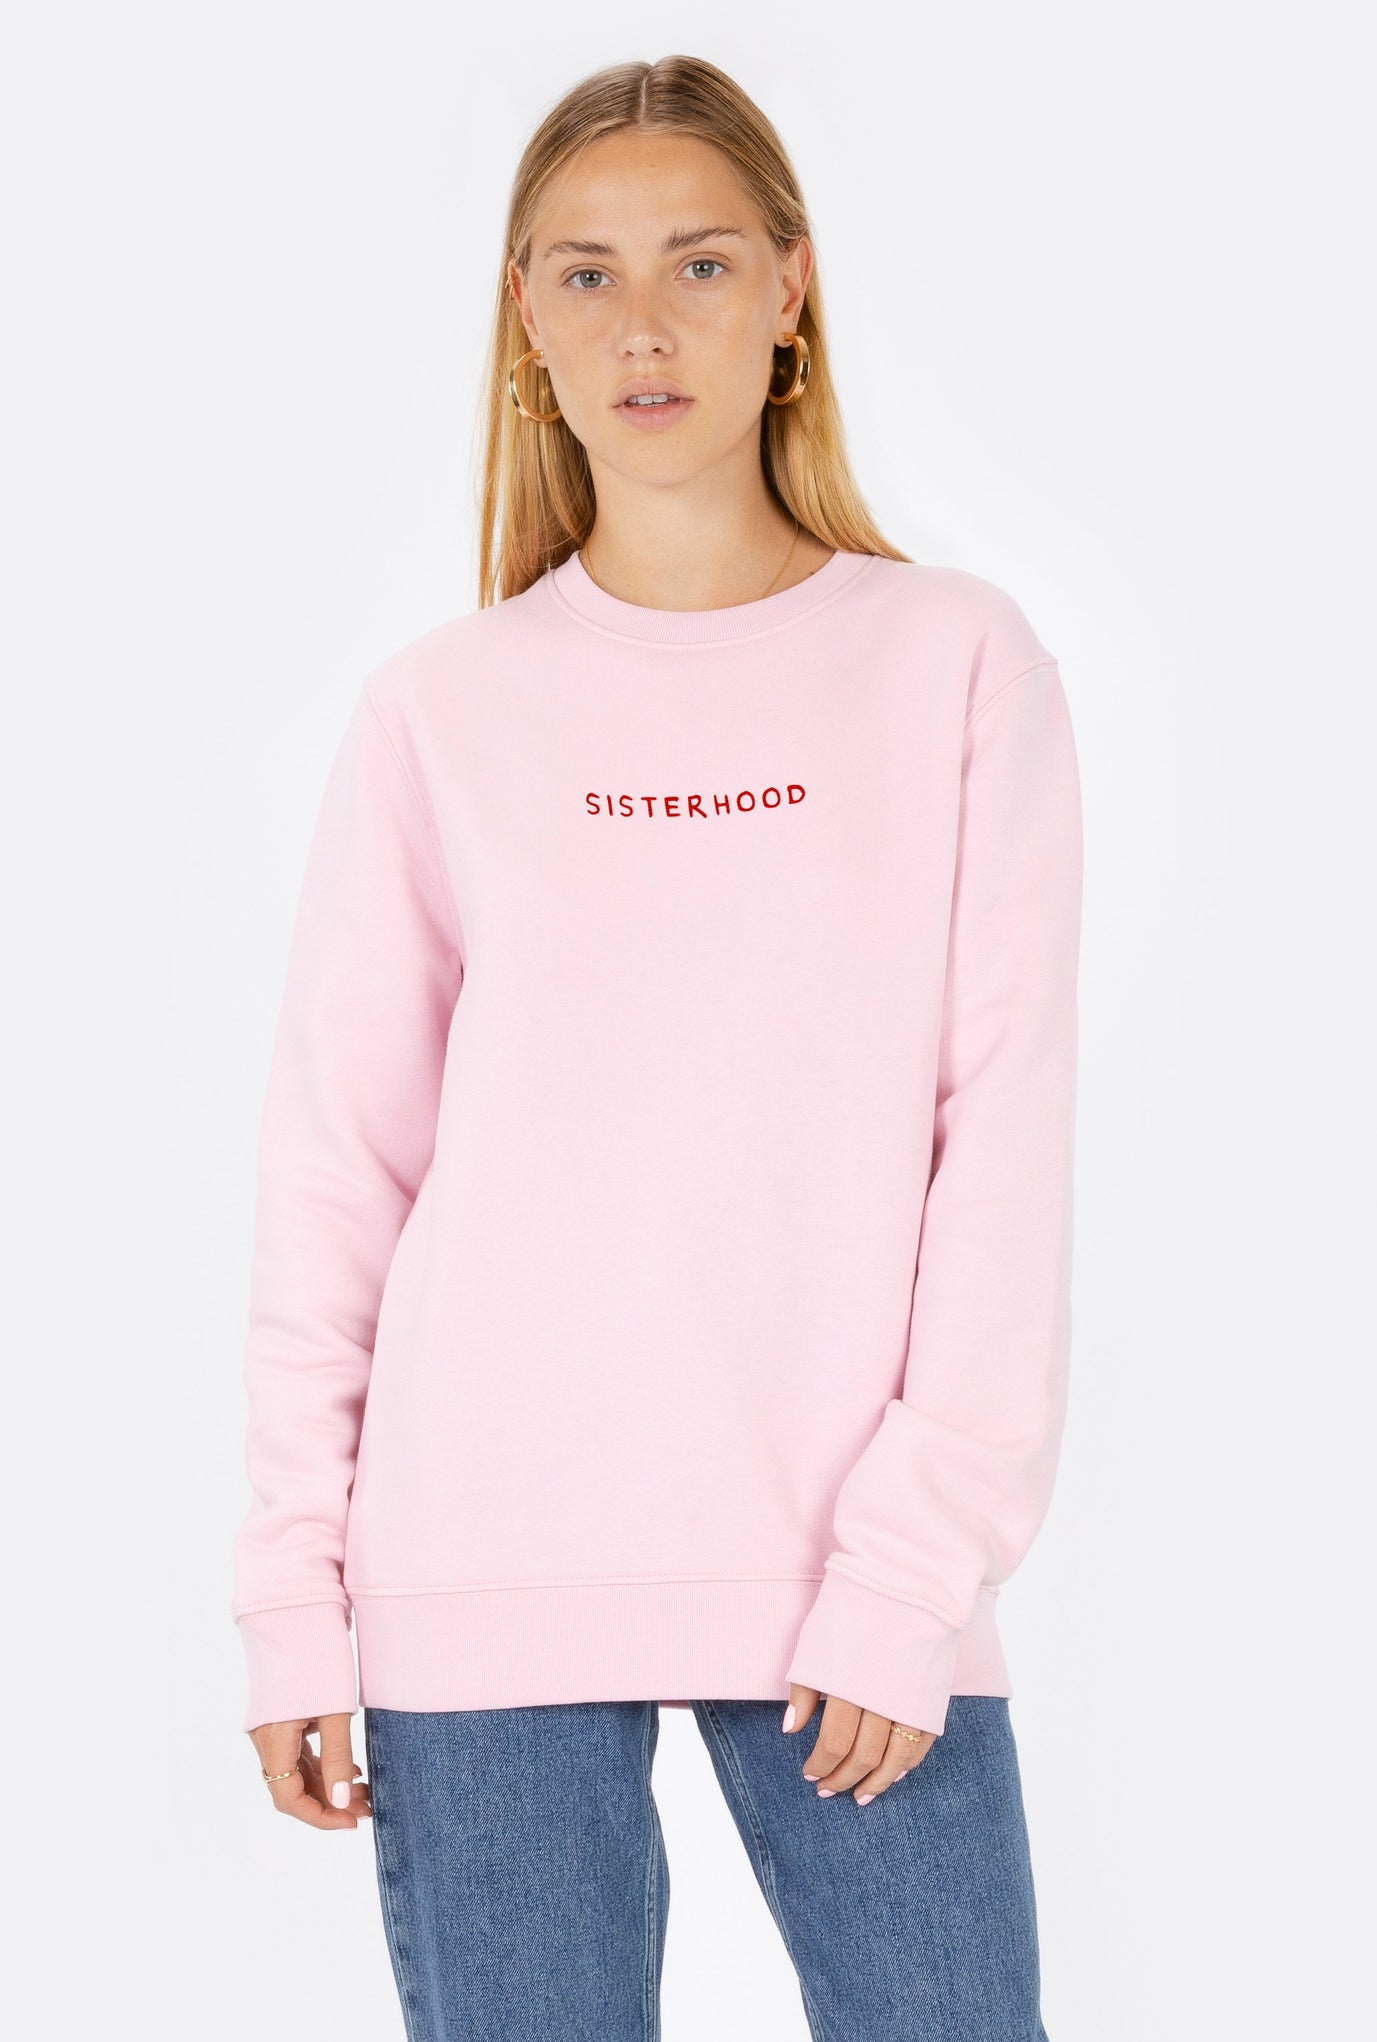 Crewneck Sisterhood - Embroidered